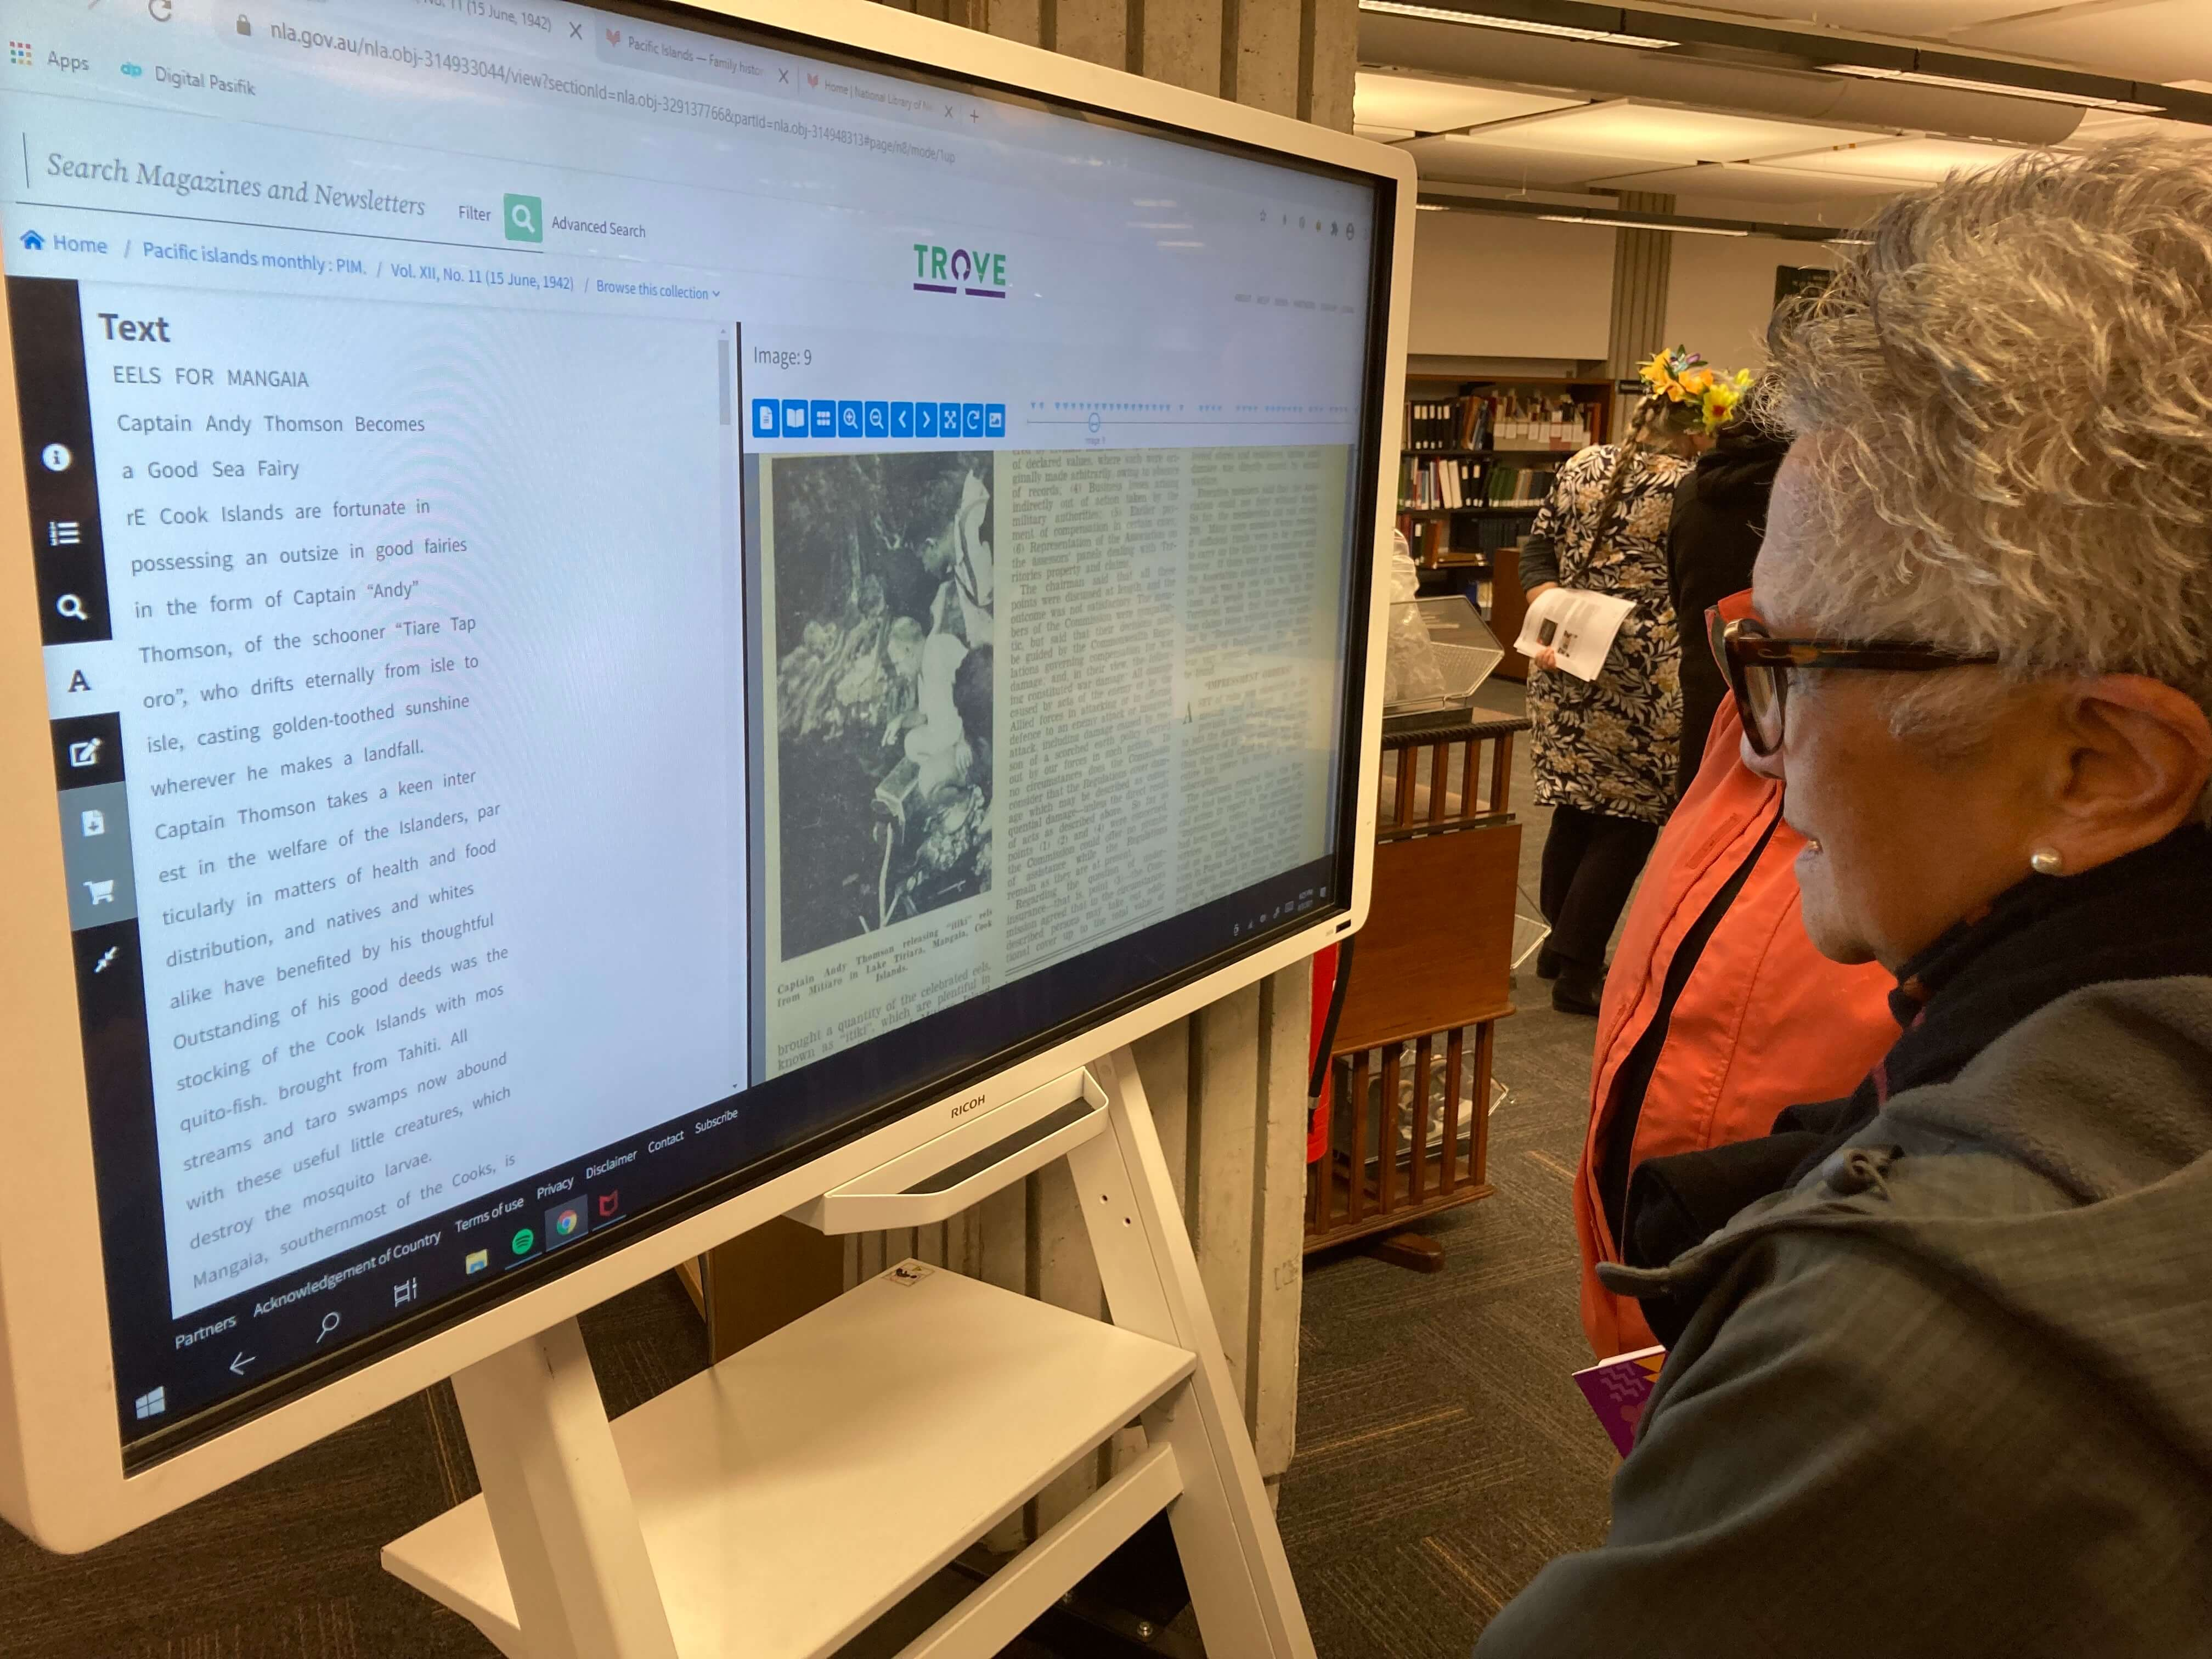 Grey haired woman looking at TV screen reading text.